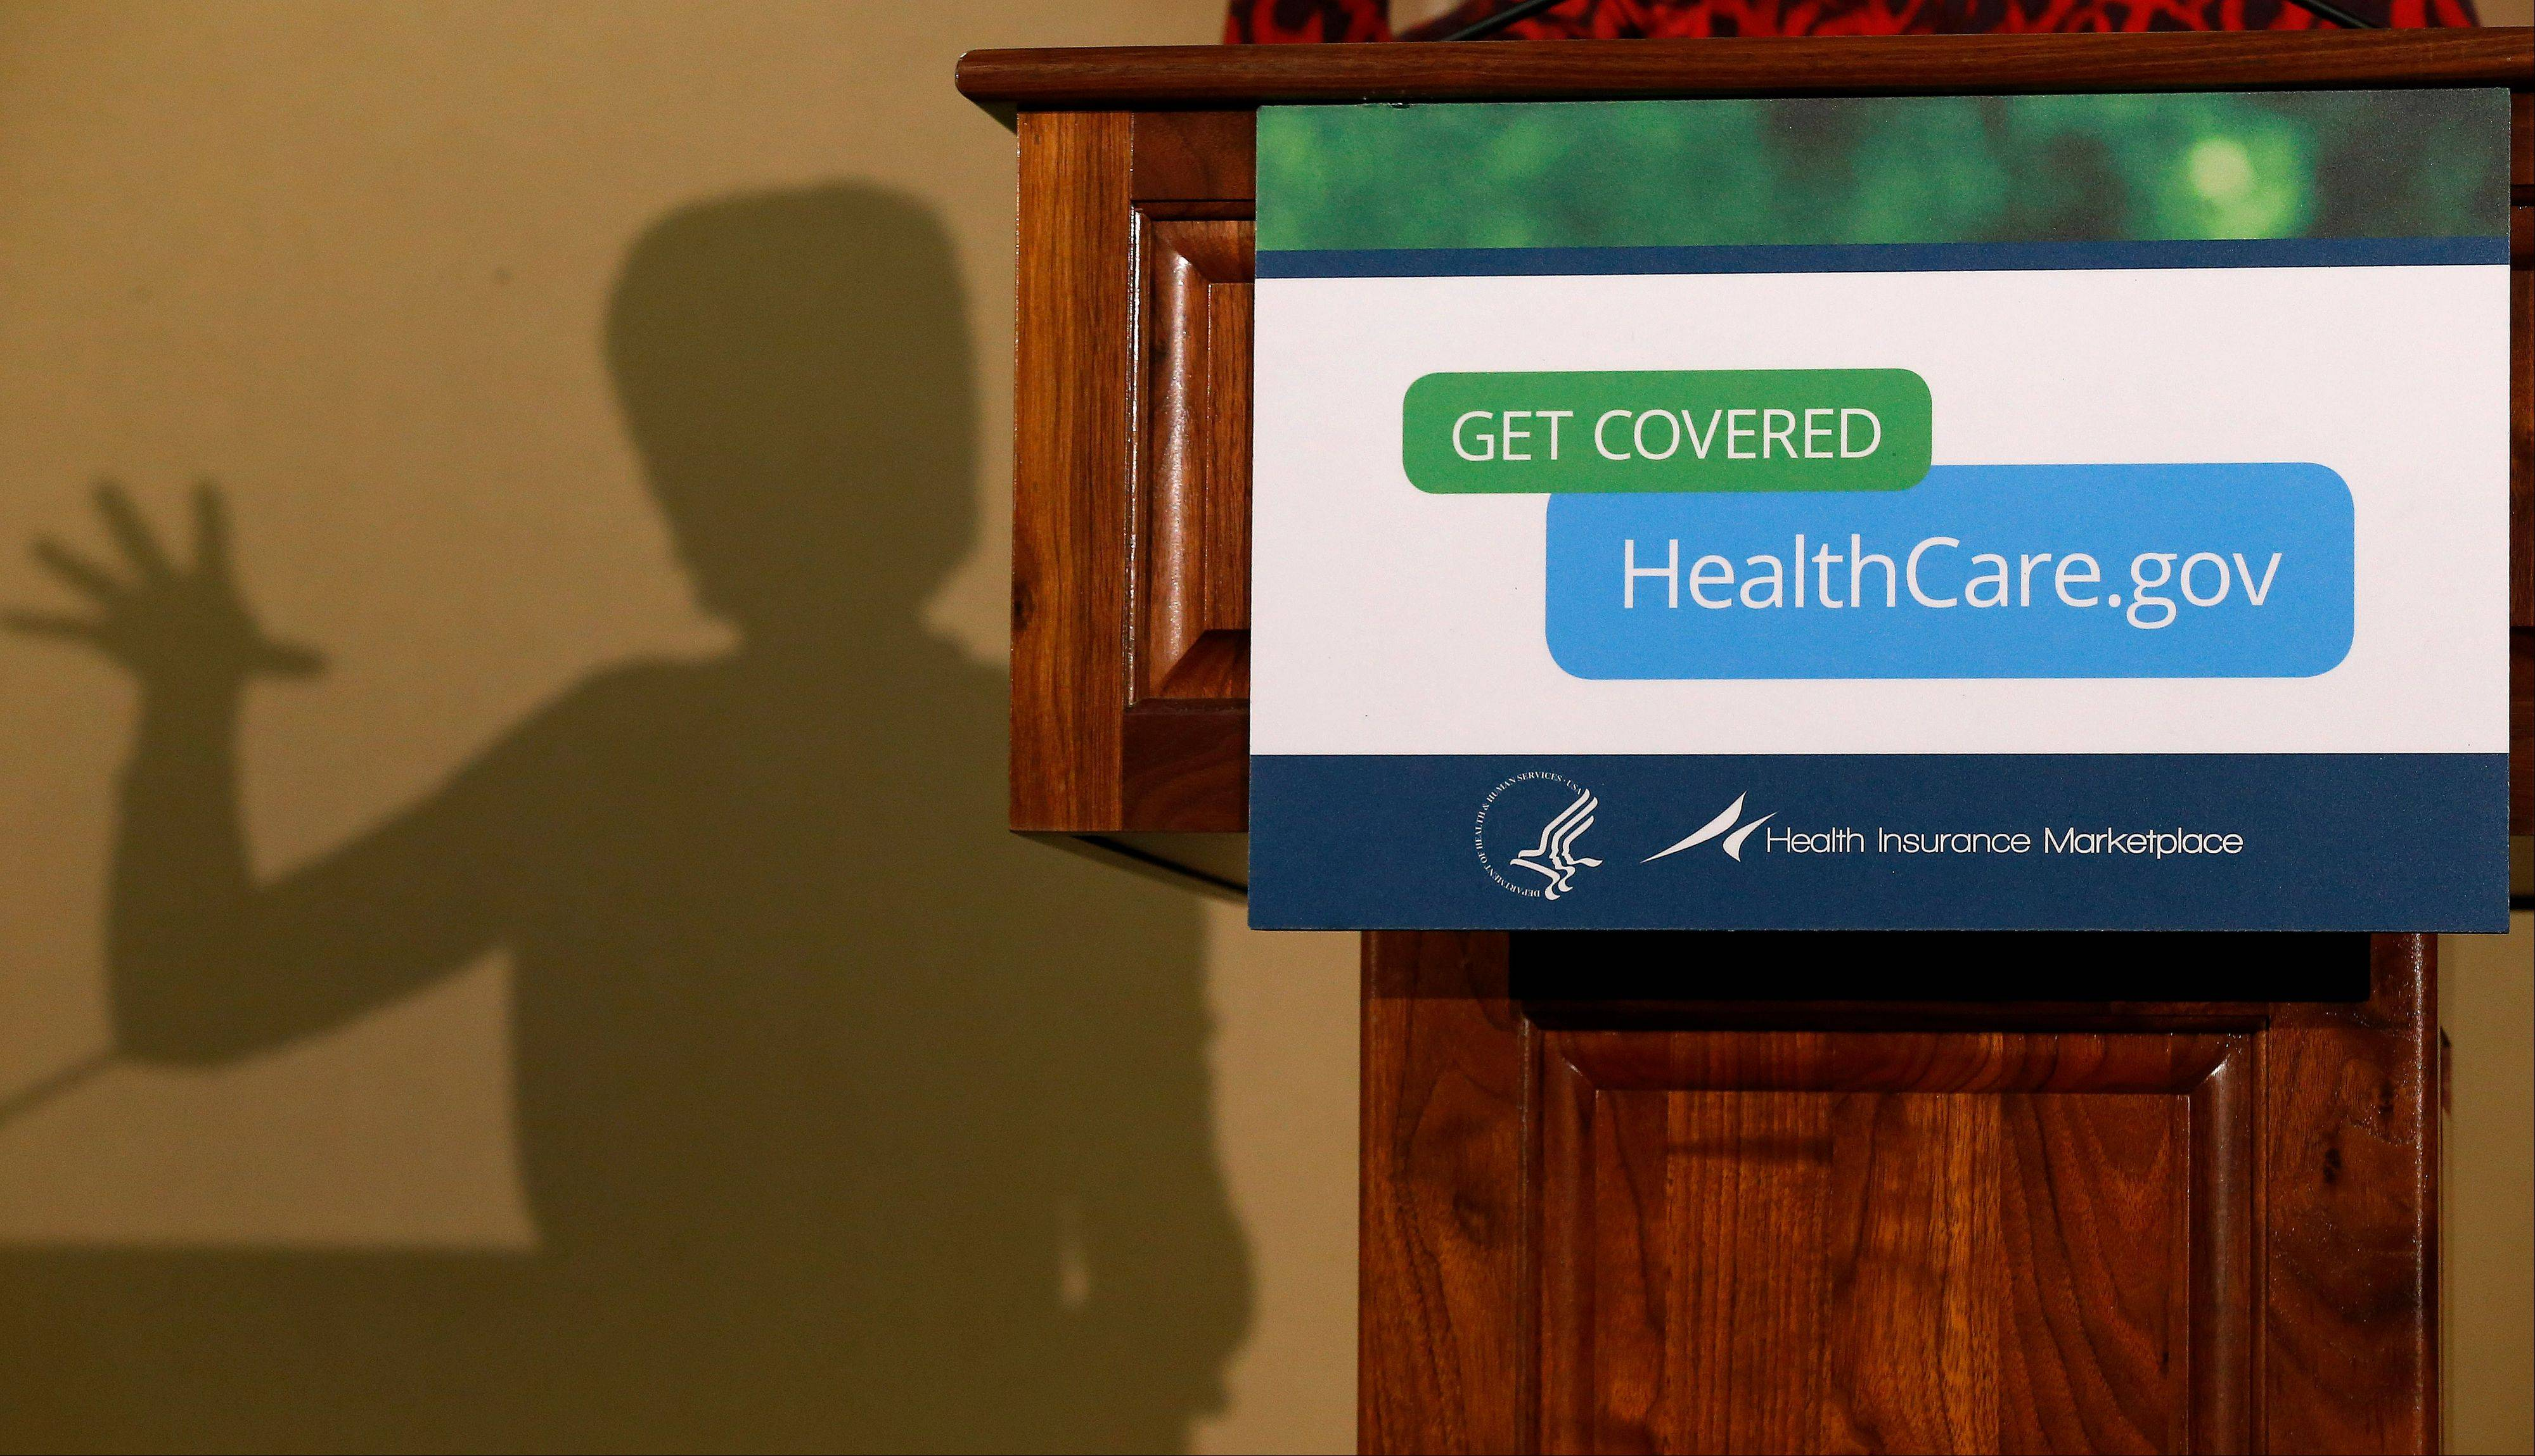 The shadow of Health and Human Services Secretary Kathleen Sebelius is cast on a wall as she speaks at the Community Health and Social Services Center in Detroit. A month after President Barack Obama announced people could keep insurance policies slated for cancellation under the federal health overhaul, the reversal has gotten a mixed response from insurers, state regulators and consumers.